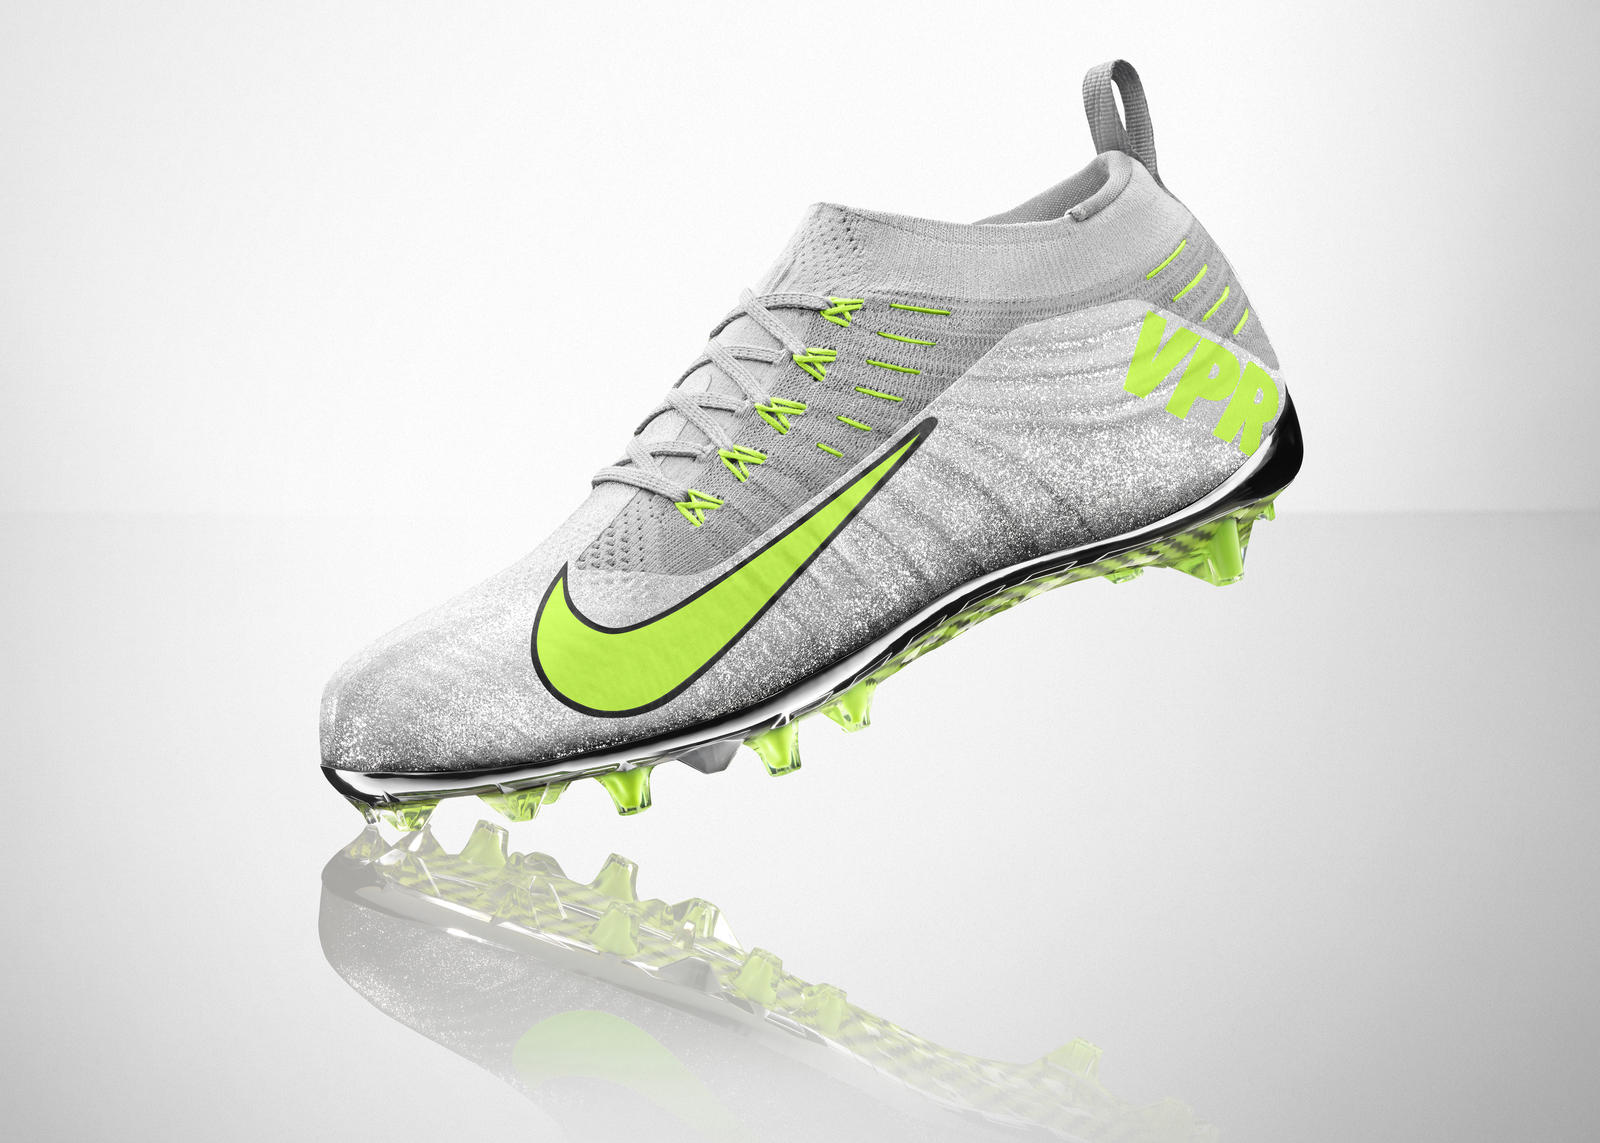 nike vapor flyknit football cleats